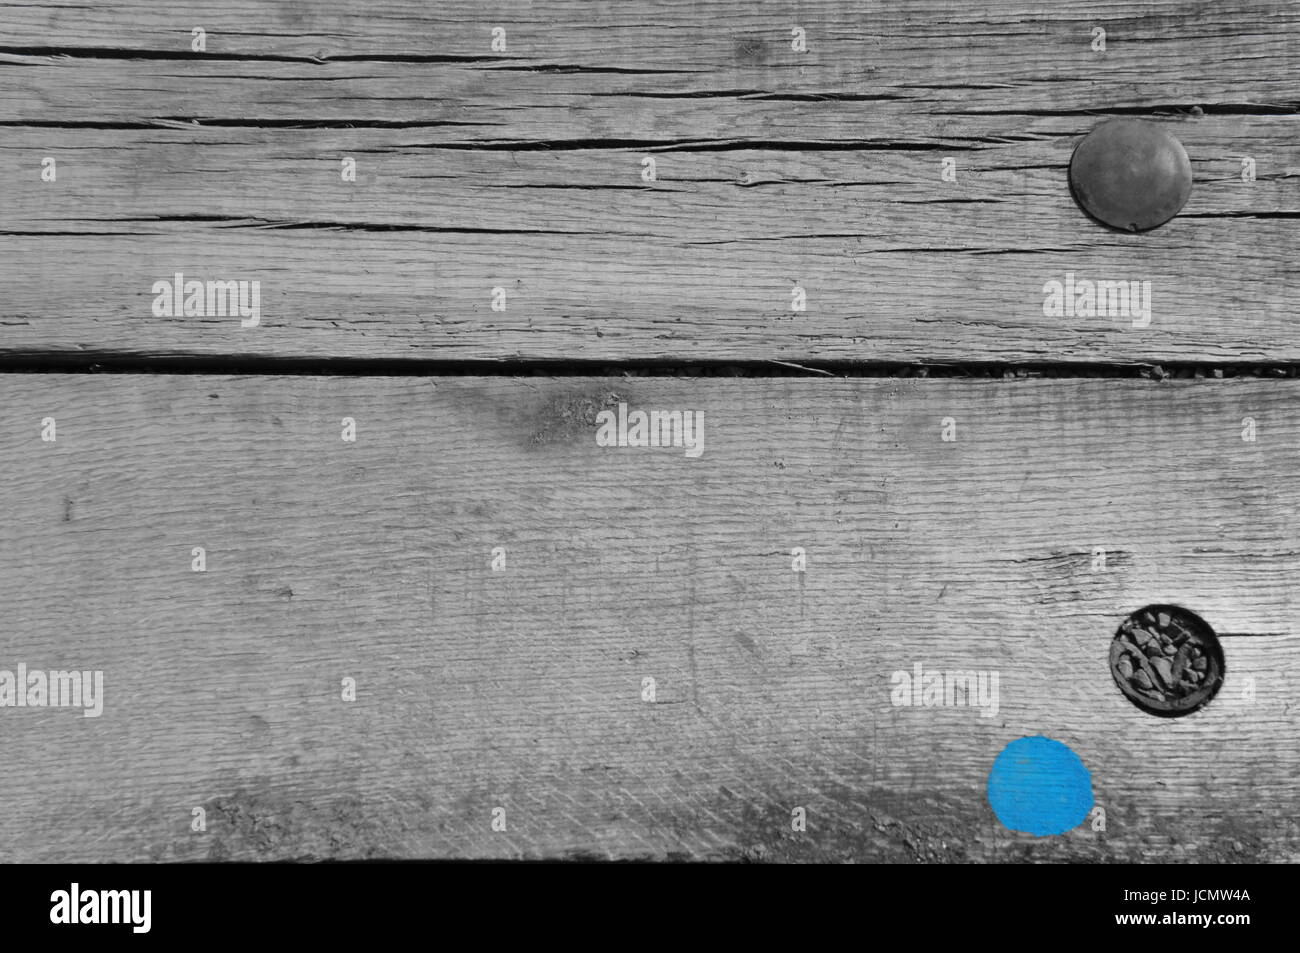 Wooden planks with blue paint - Stock Image